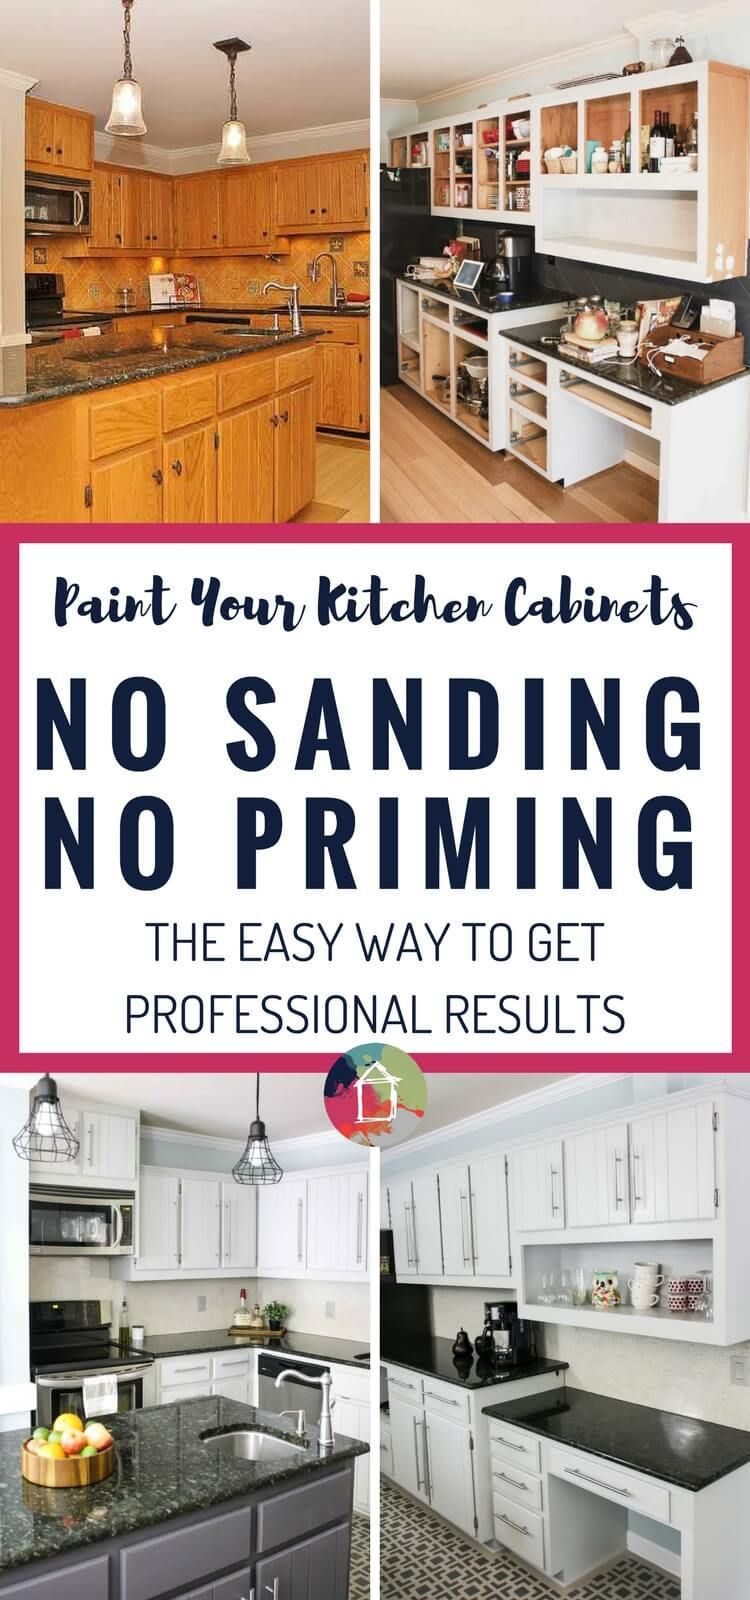 How To Paint Kitchen Cabinets Without Sanding Or Priming Step By Step Kitchen Cabinets Makeover Diy Kitchen Kitchen Renovation